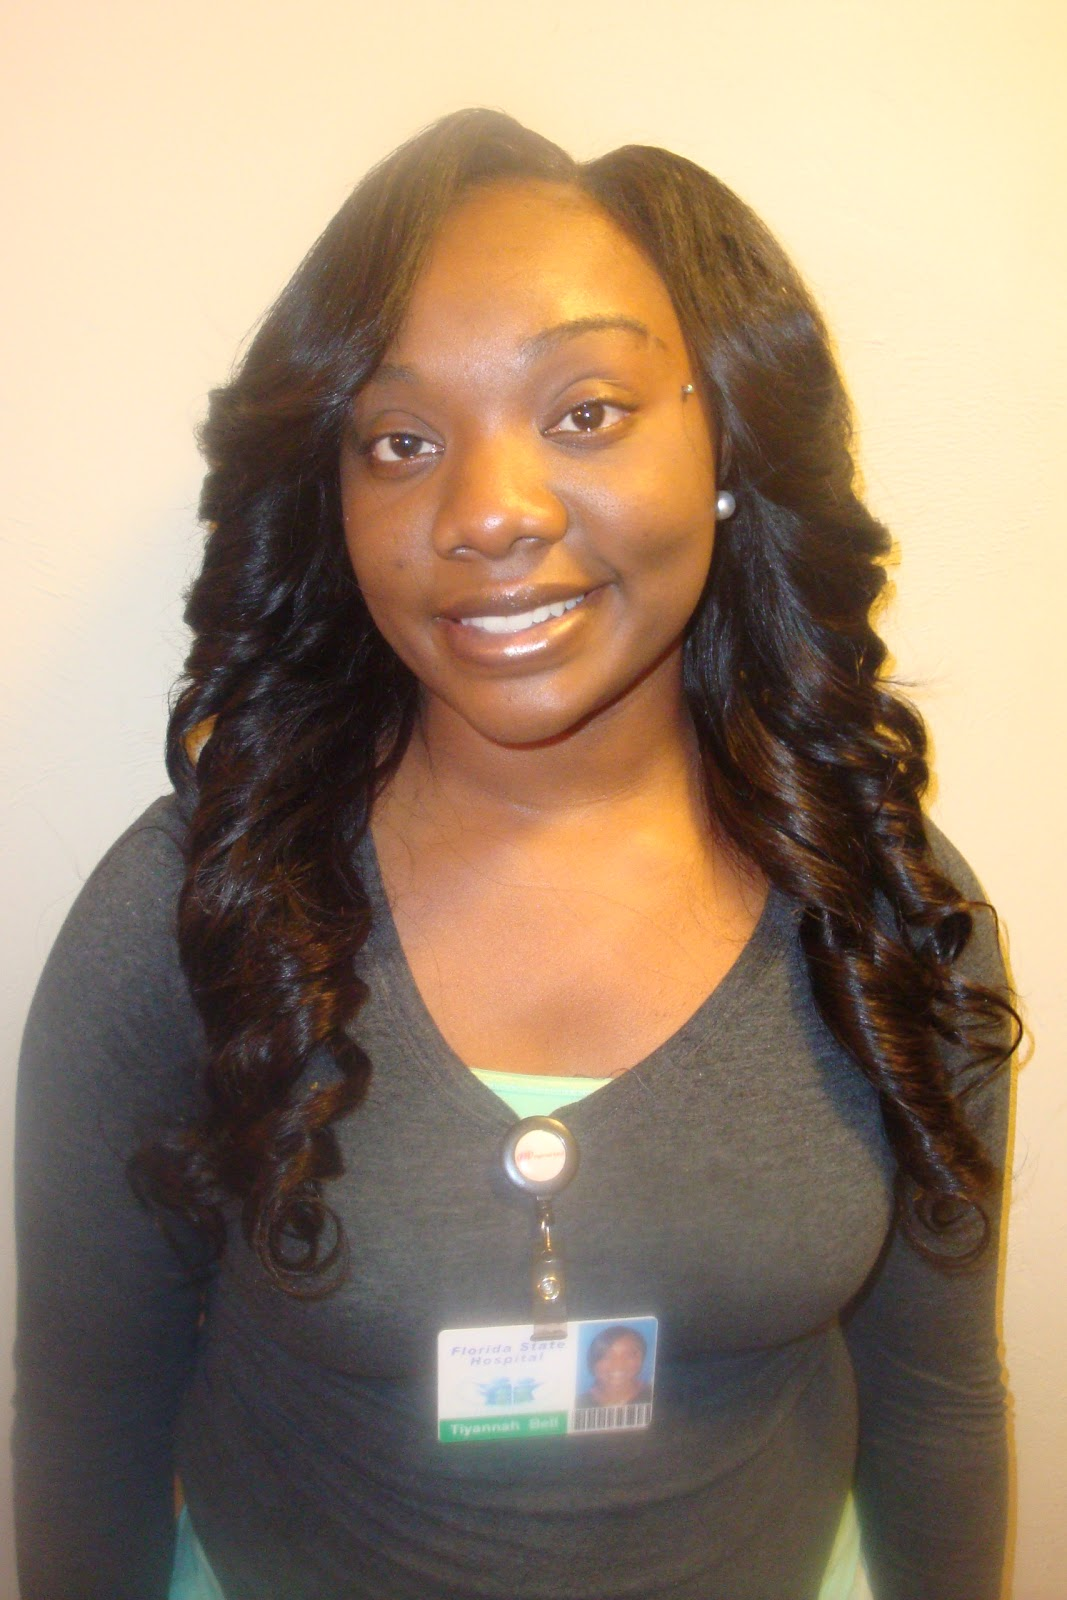 SewIn with Brazilian Hair layered and curled. 1067 x 1600.Sew In Weave Bob Hairstyles With Bangs